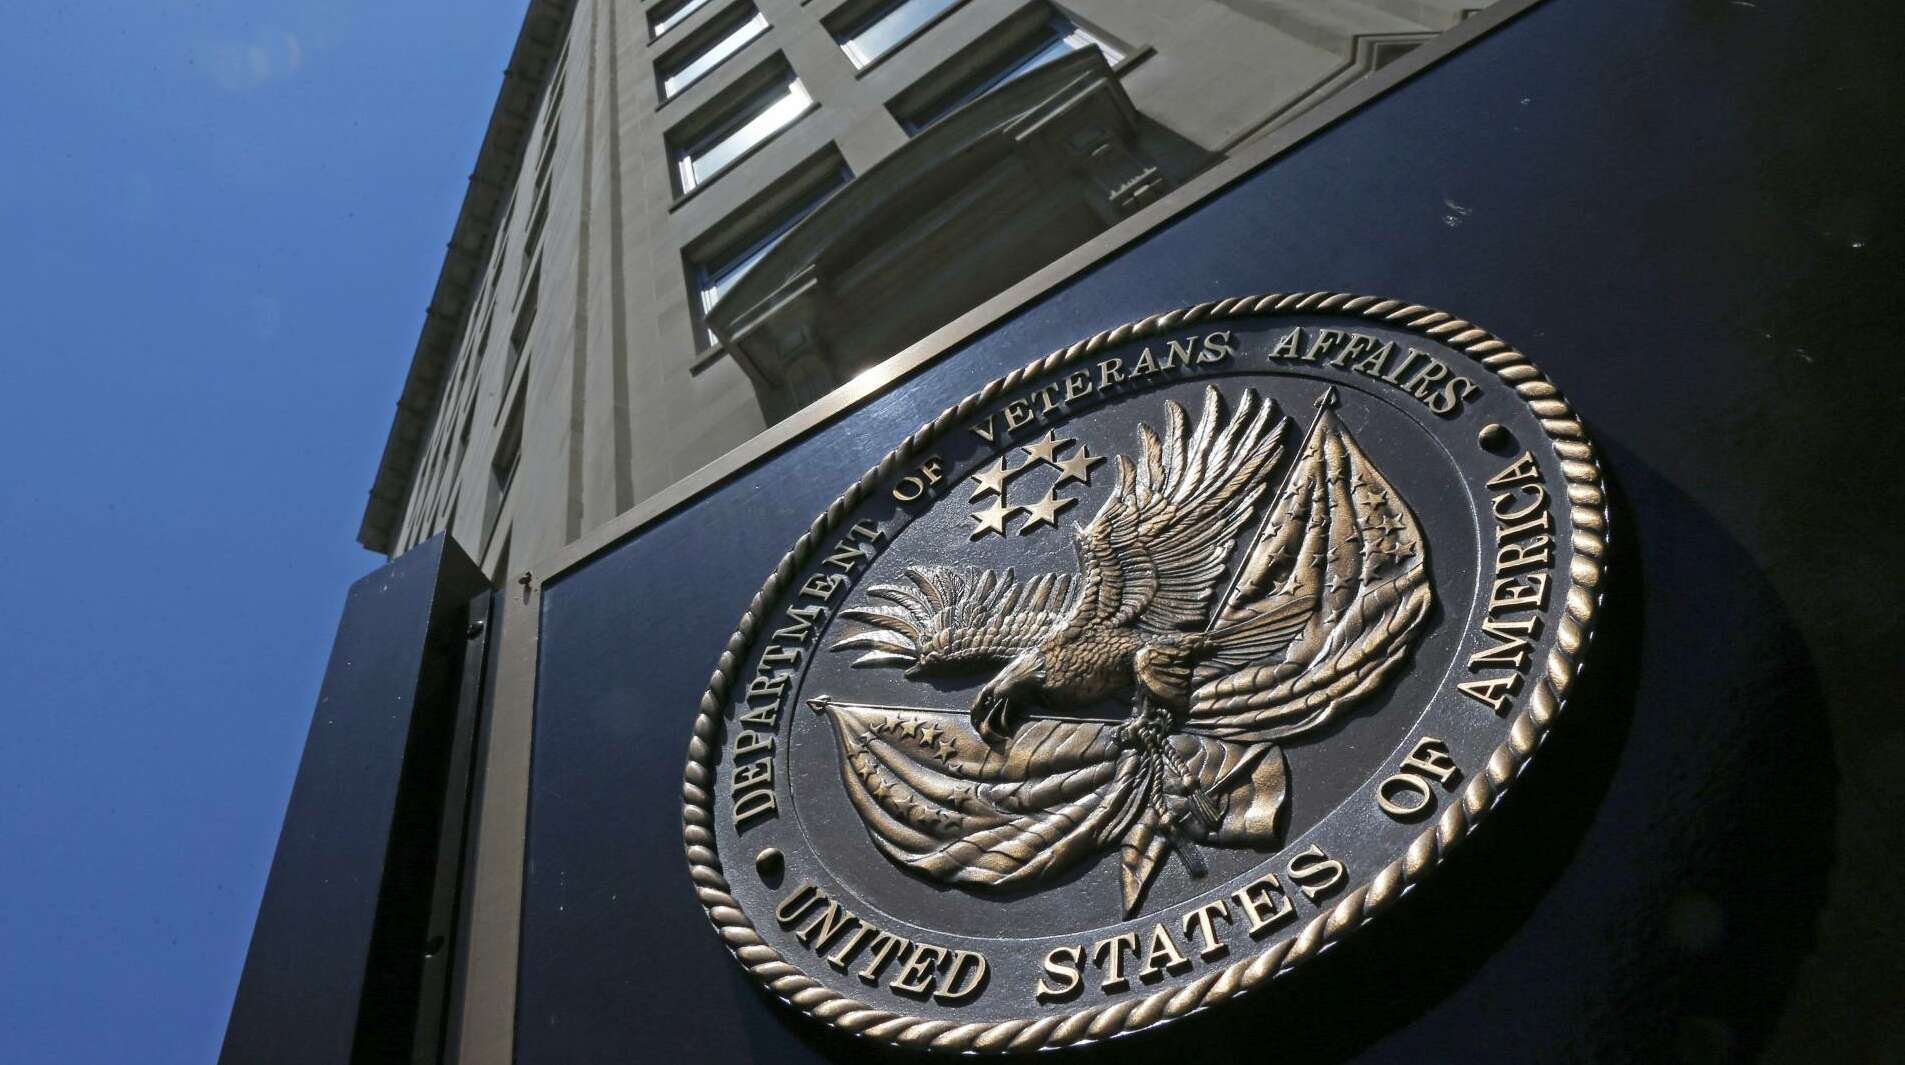 FILE - In this June 21, 2013, file photo, the seal affixed to the front of the Department of Veterans Affairs building in Washington. The Department of Veterans Affairs is warning of a rapidly growing backlog for veterans who seek to appeal decisions involving disability benefits, saying it will need much more staff even as money remains in question due to a tightening Trump administration budget.  (AP Photo/Charles Dharapak, File)